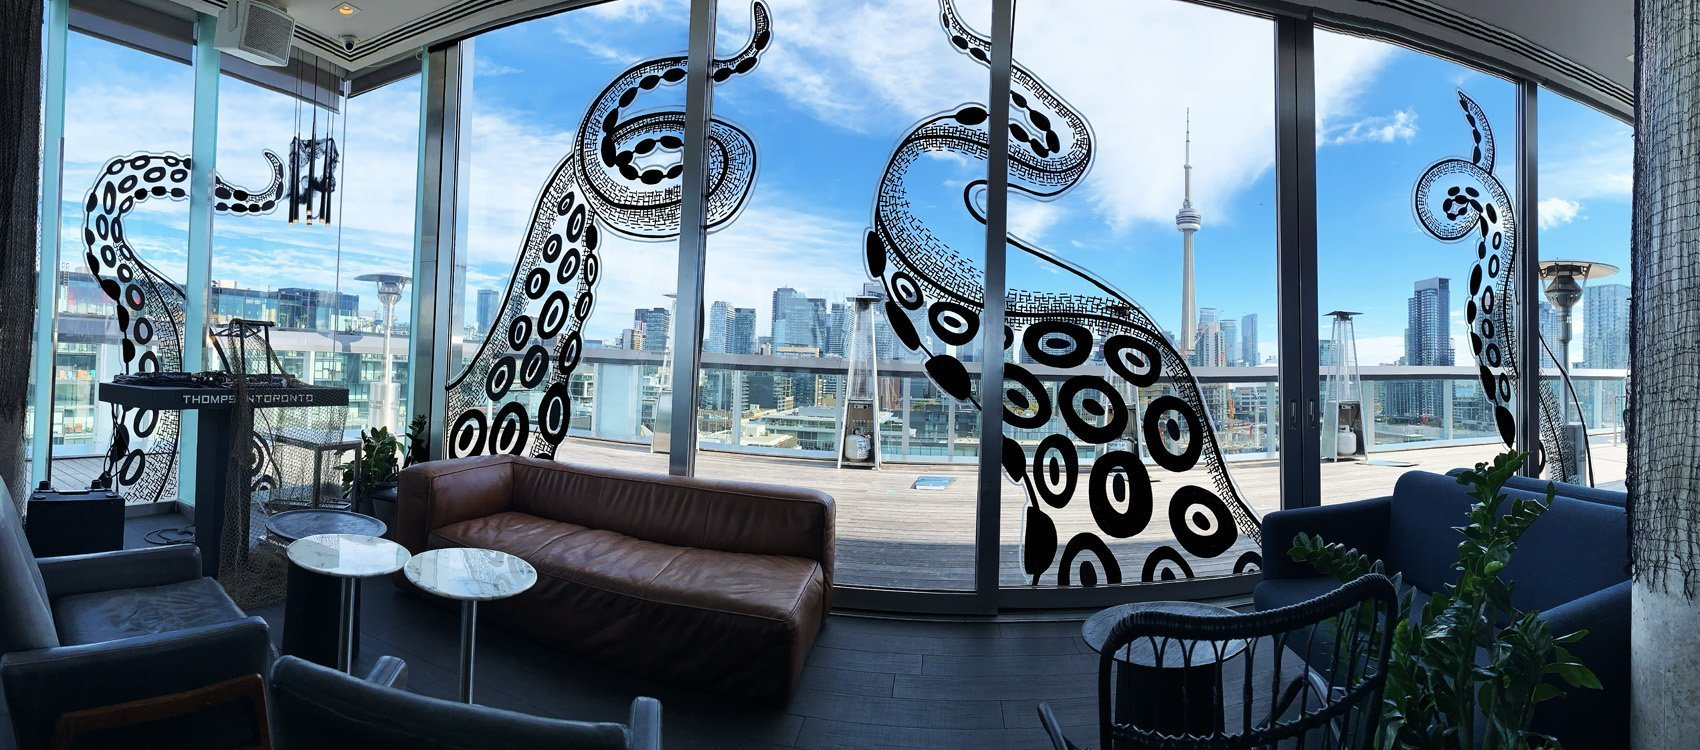 window mural art, thompson toronto hotel, rooftop patio